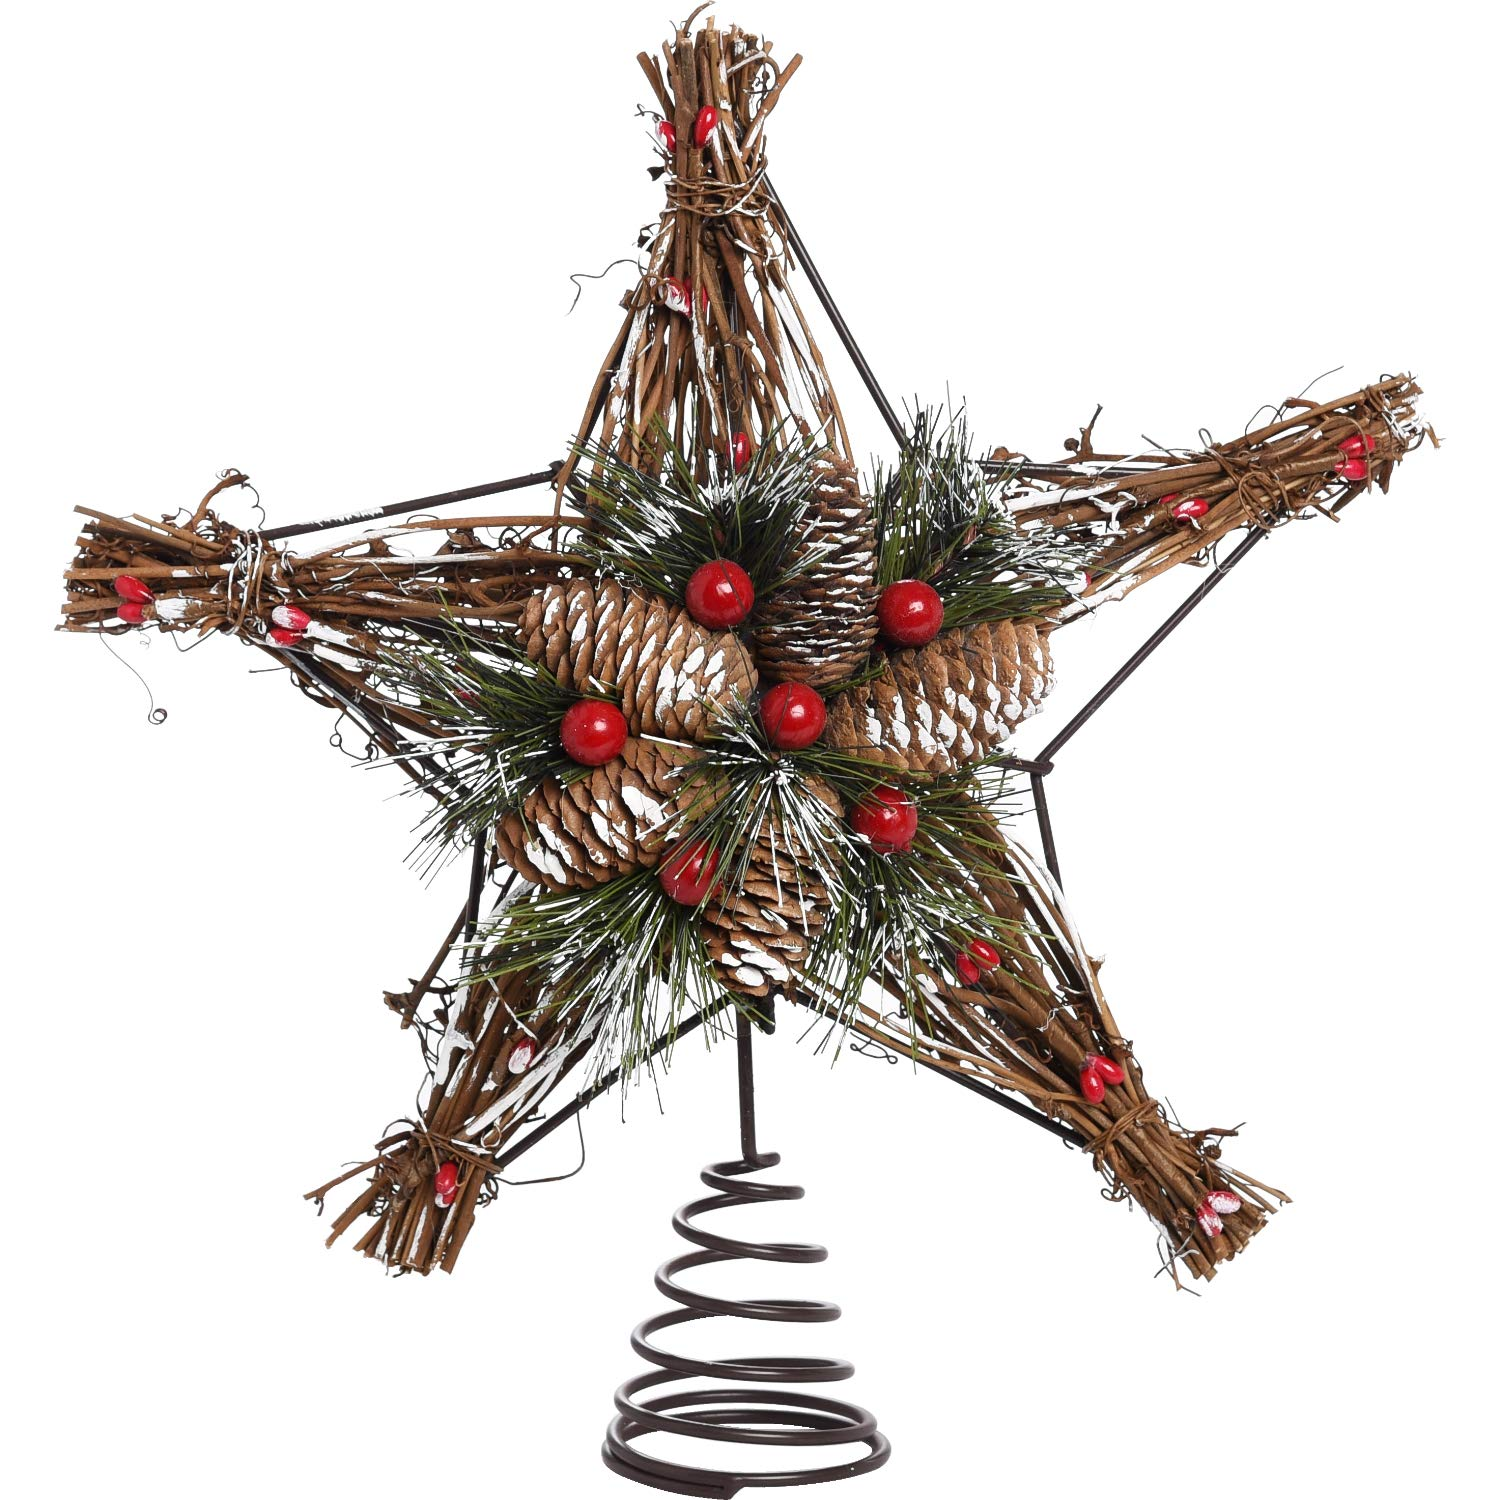 Rustic Twig and Pinecone Star Tree Top Decoration - Christmas Tree Topper Holiday Ornament